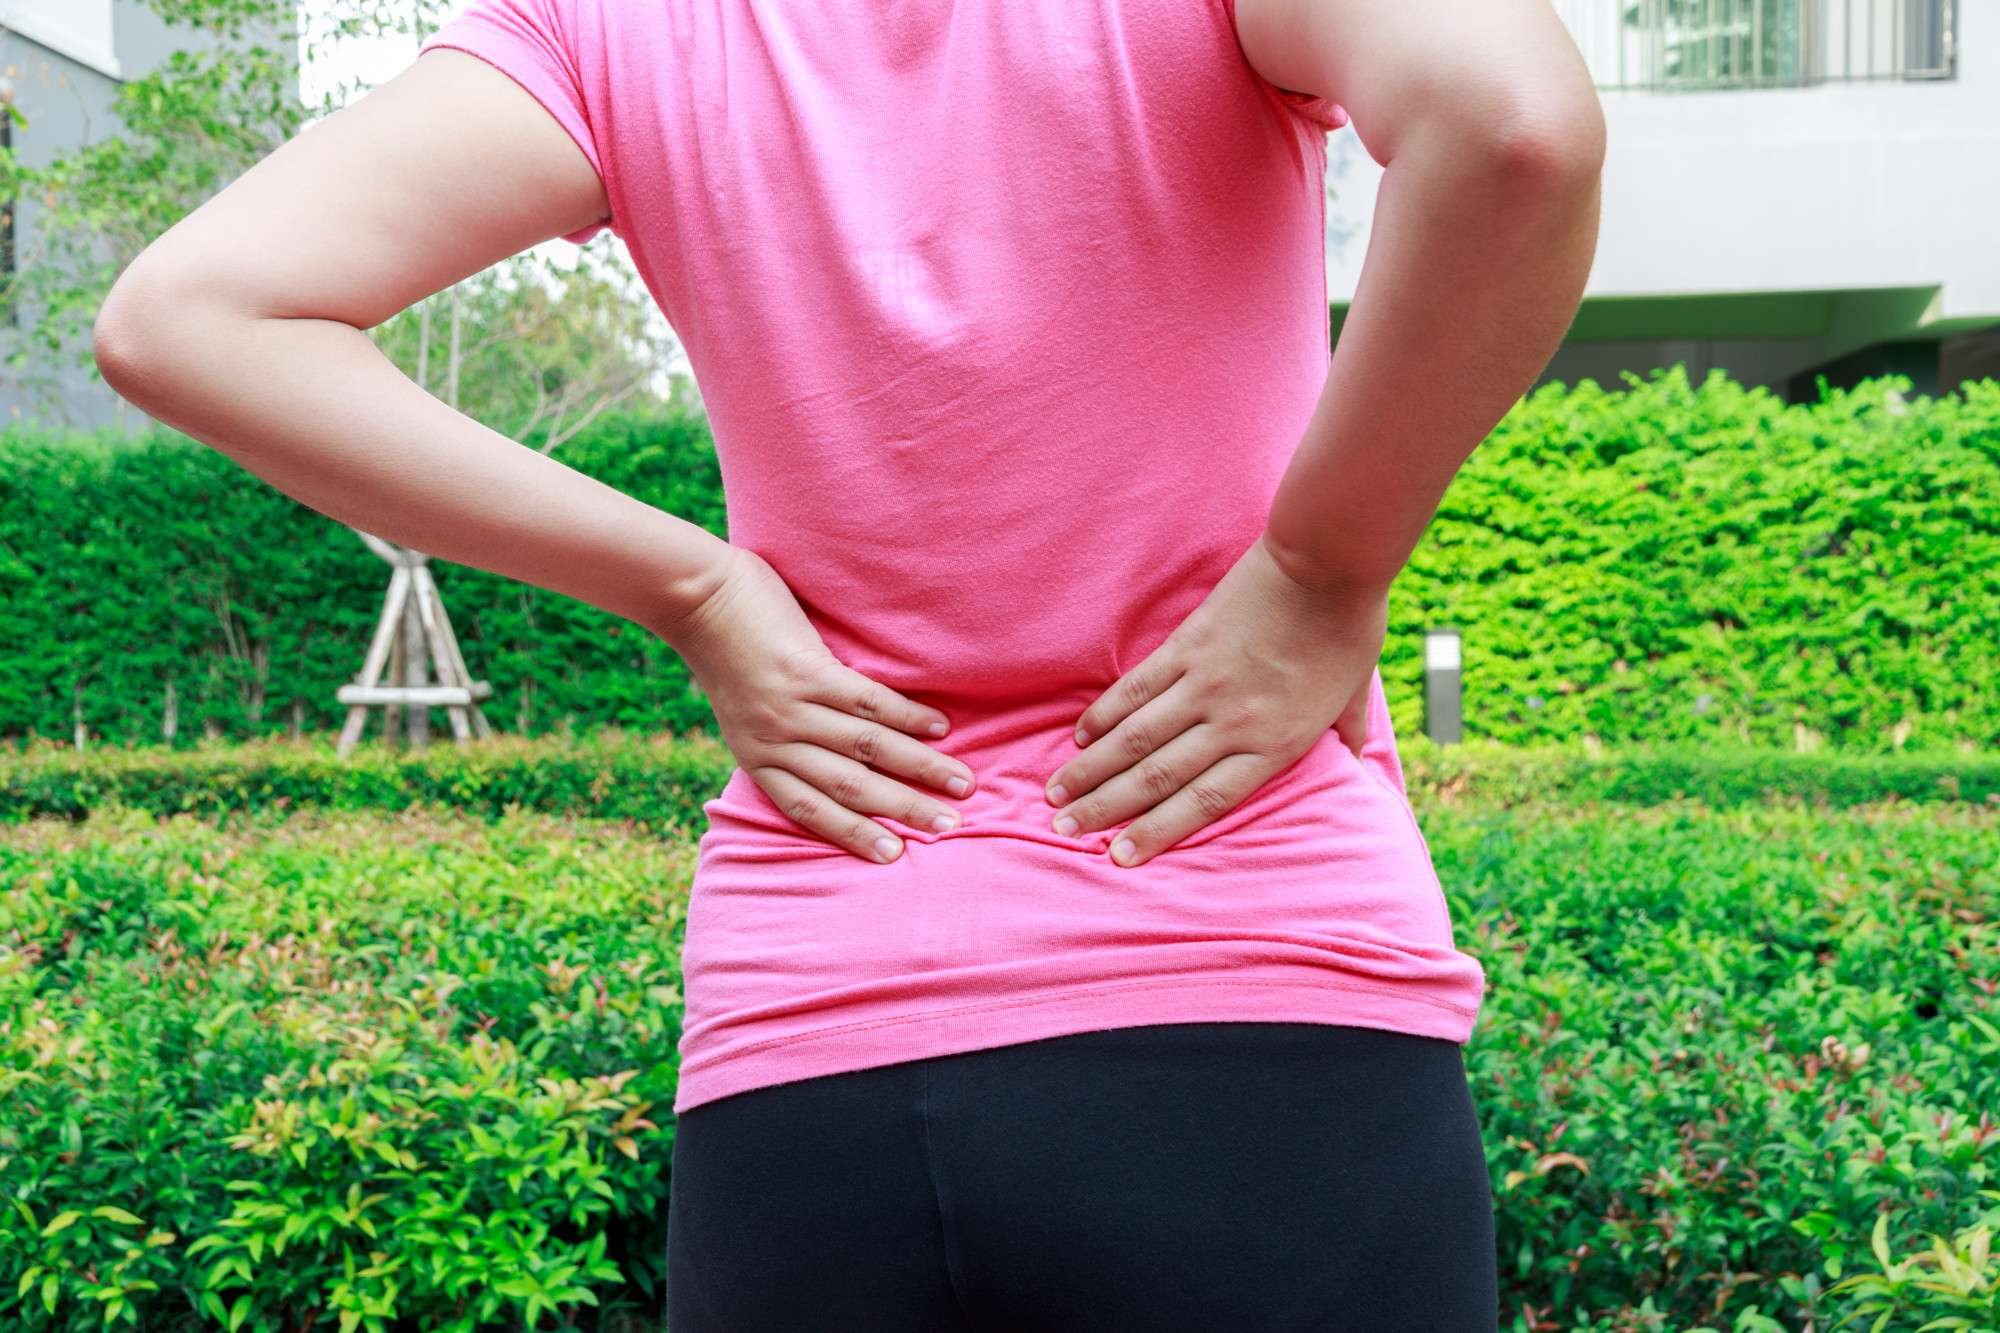 9 Lower Back Pain Causes That Could Be Affecting Your Well-Being